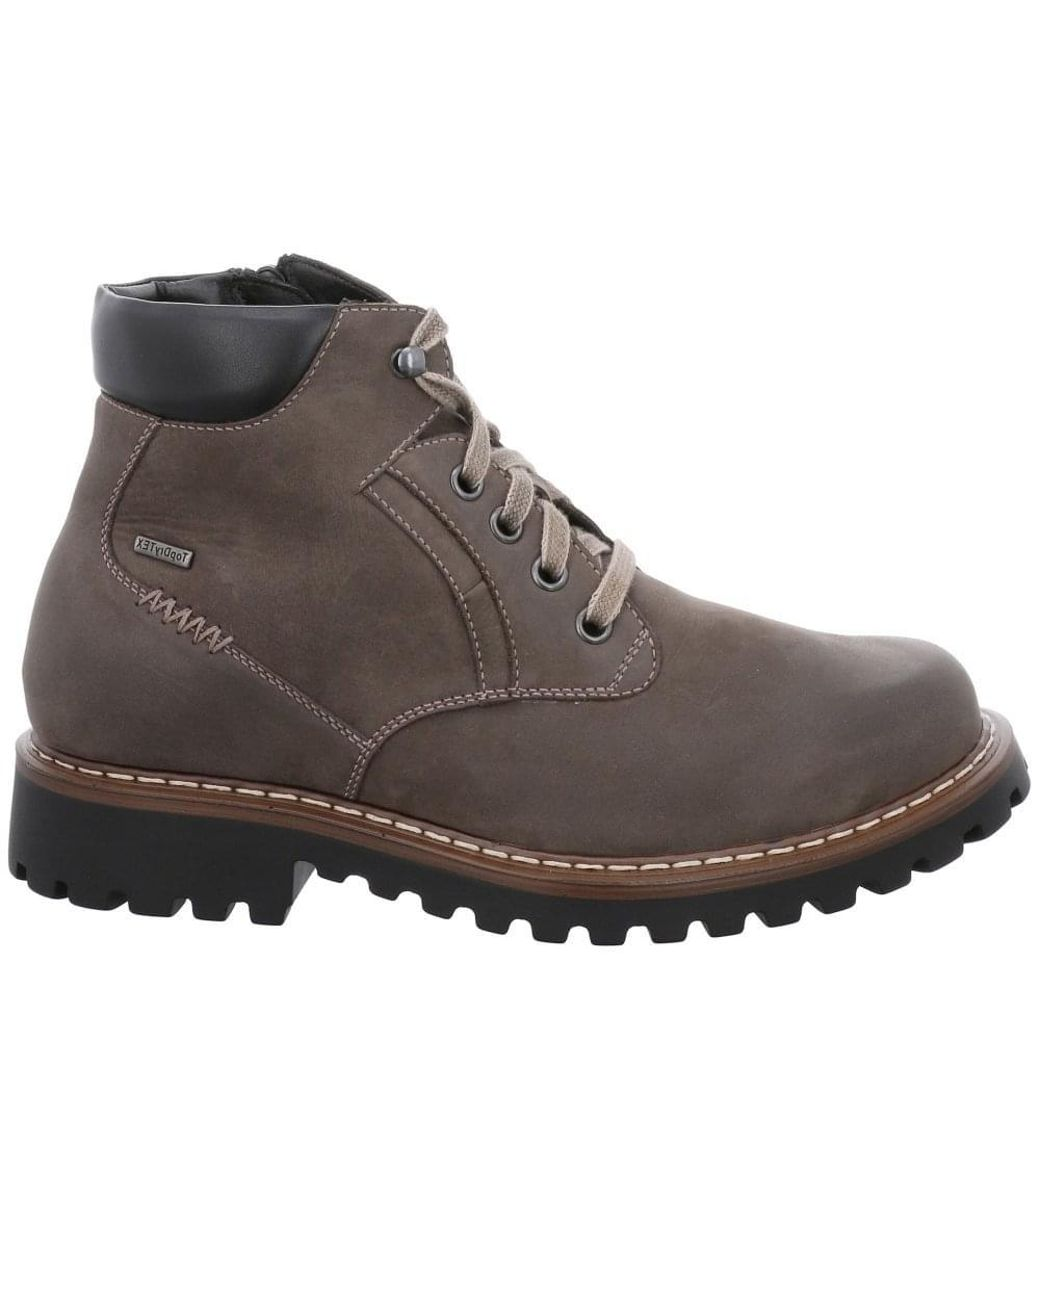 eac123283d04f Josef Seibel Chance 39 Mens Waterproof Lace Up Hiker Ankle Boots in Brown  for Men - Lyst